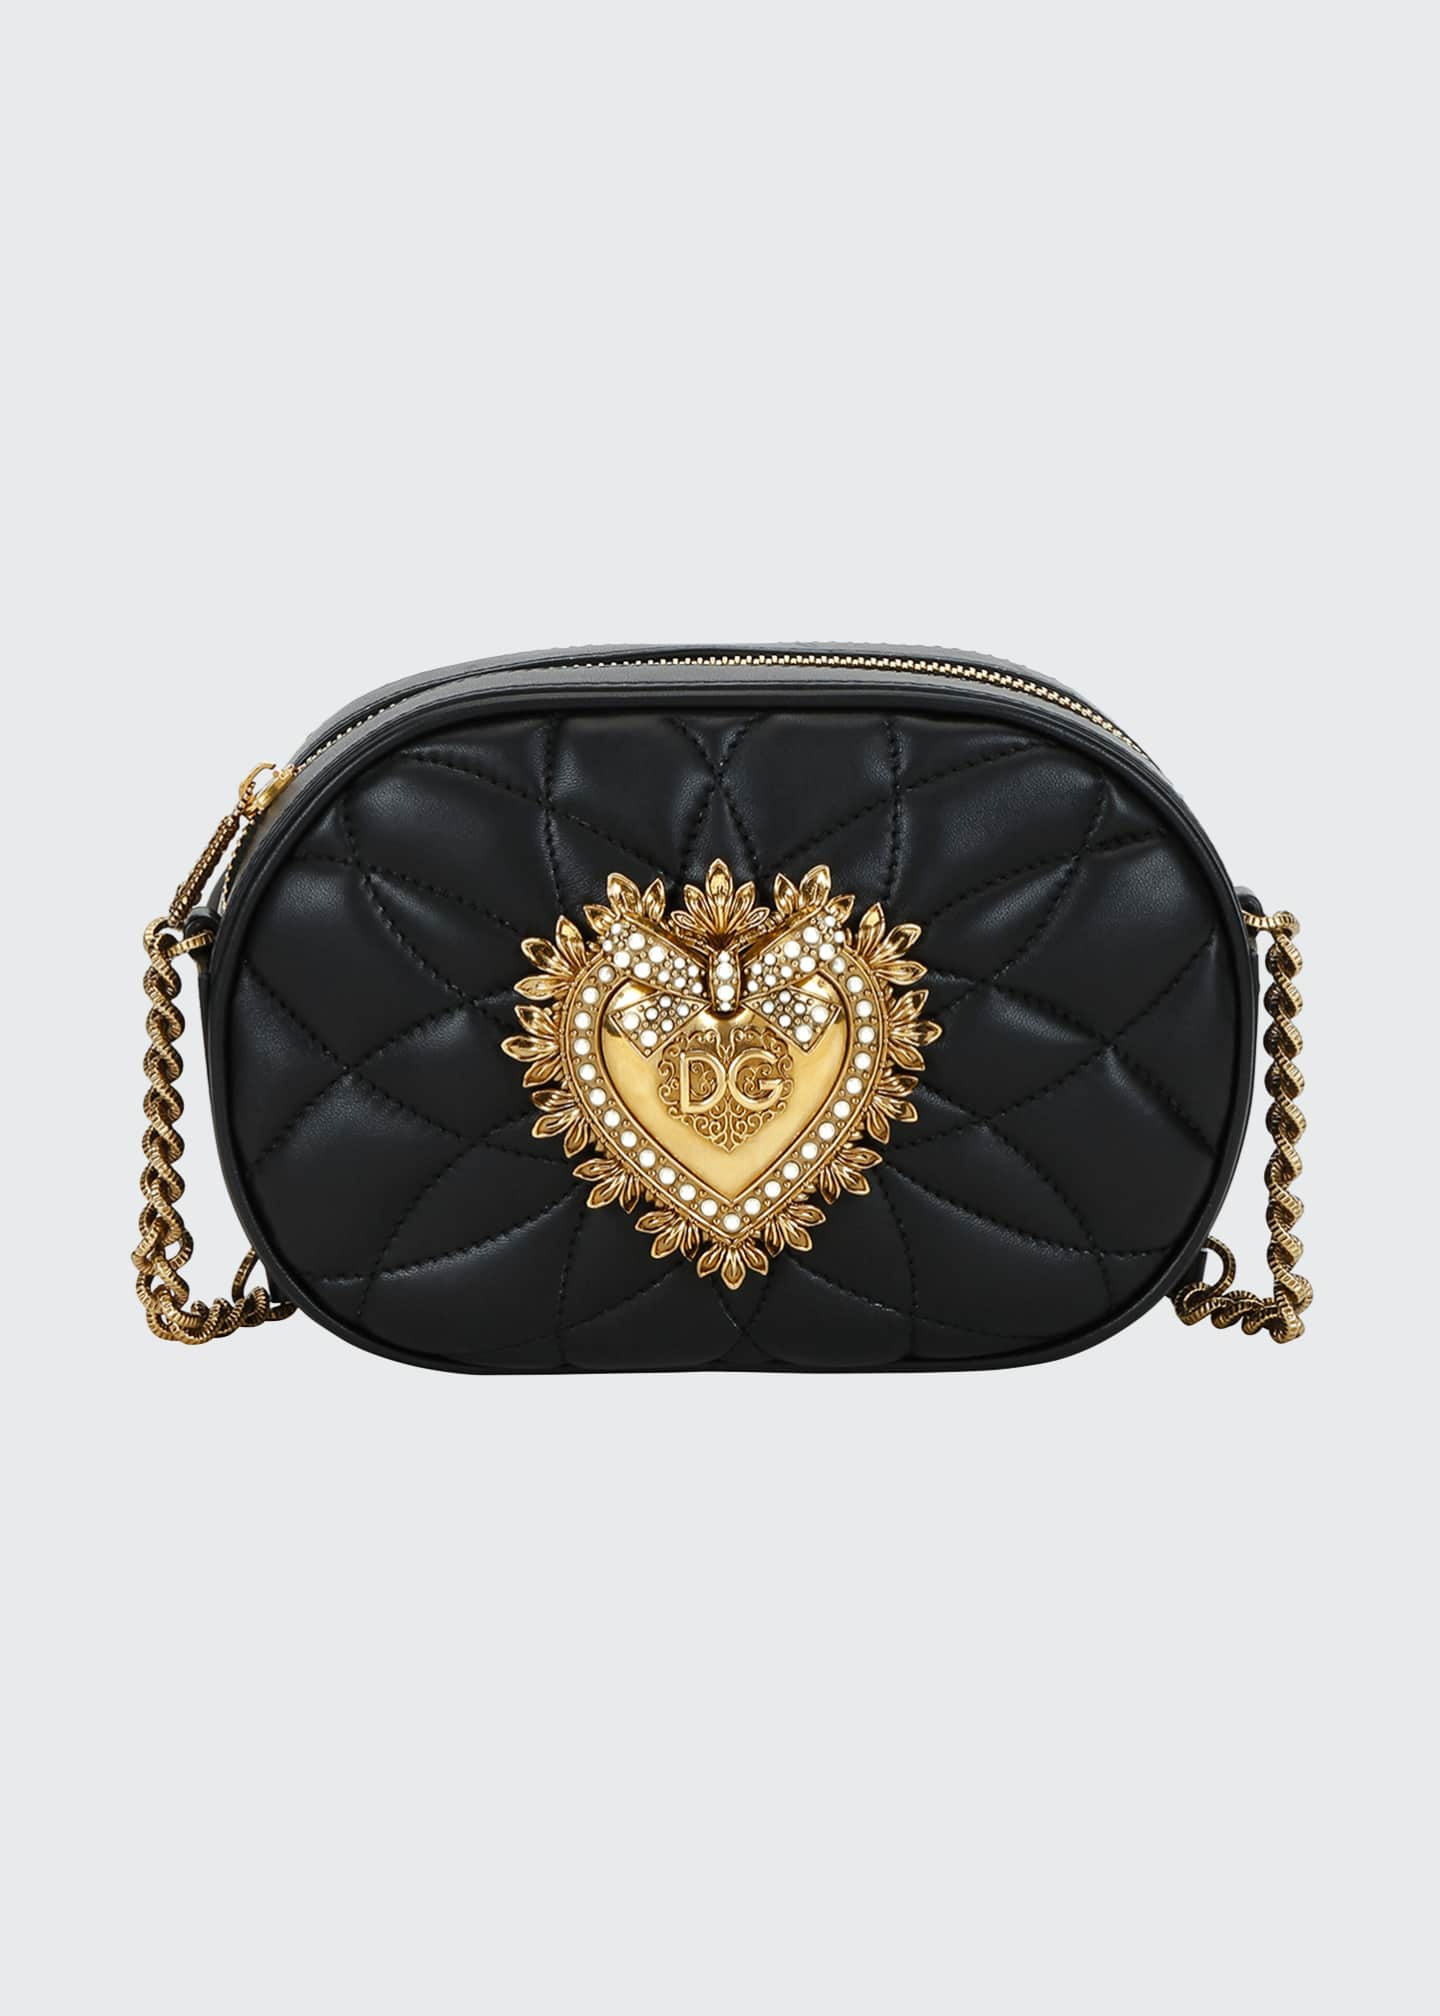 Dolce & Gabbana Devotion Leather Camera Bag with